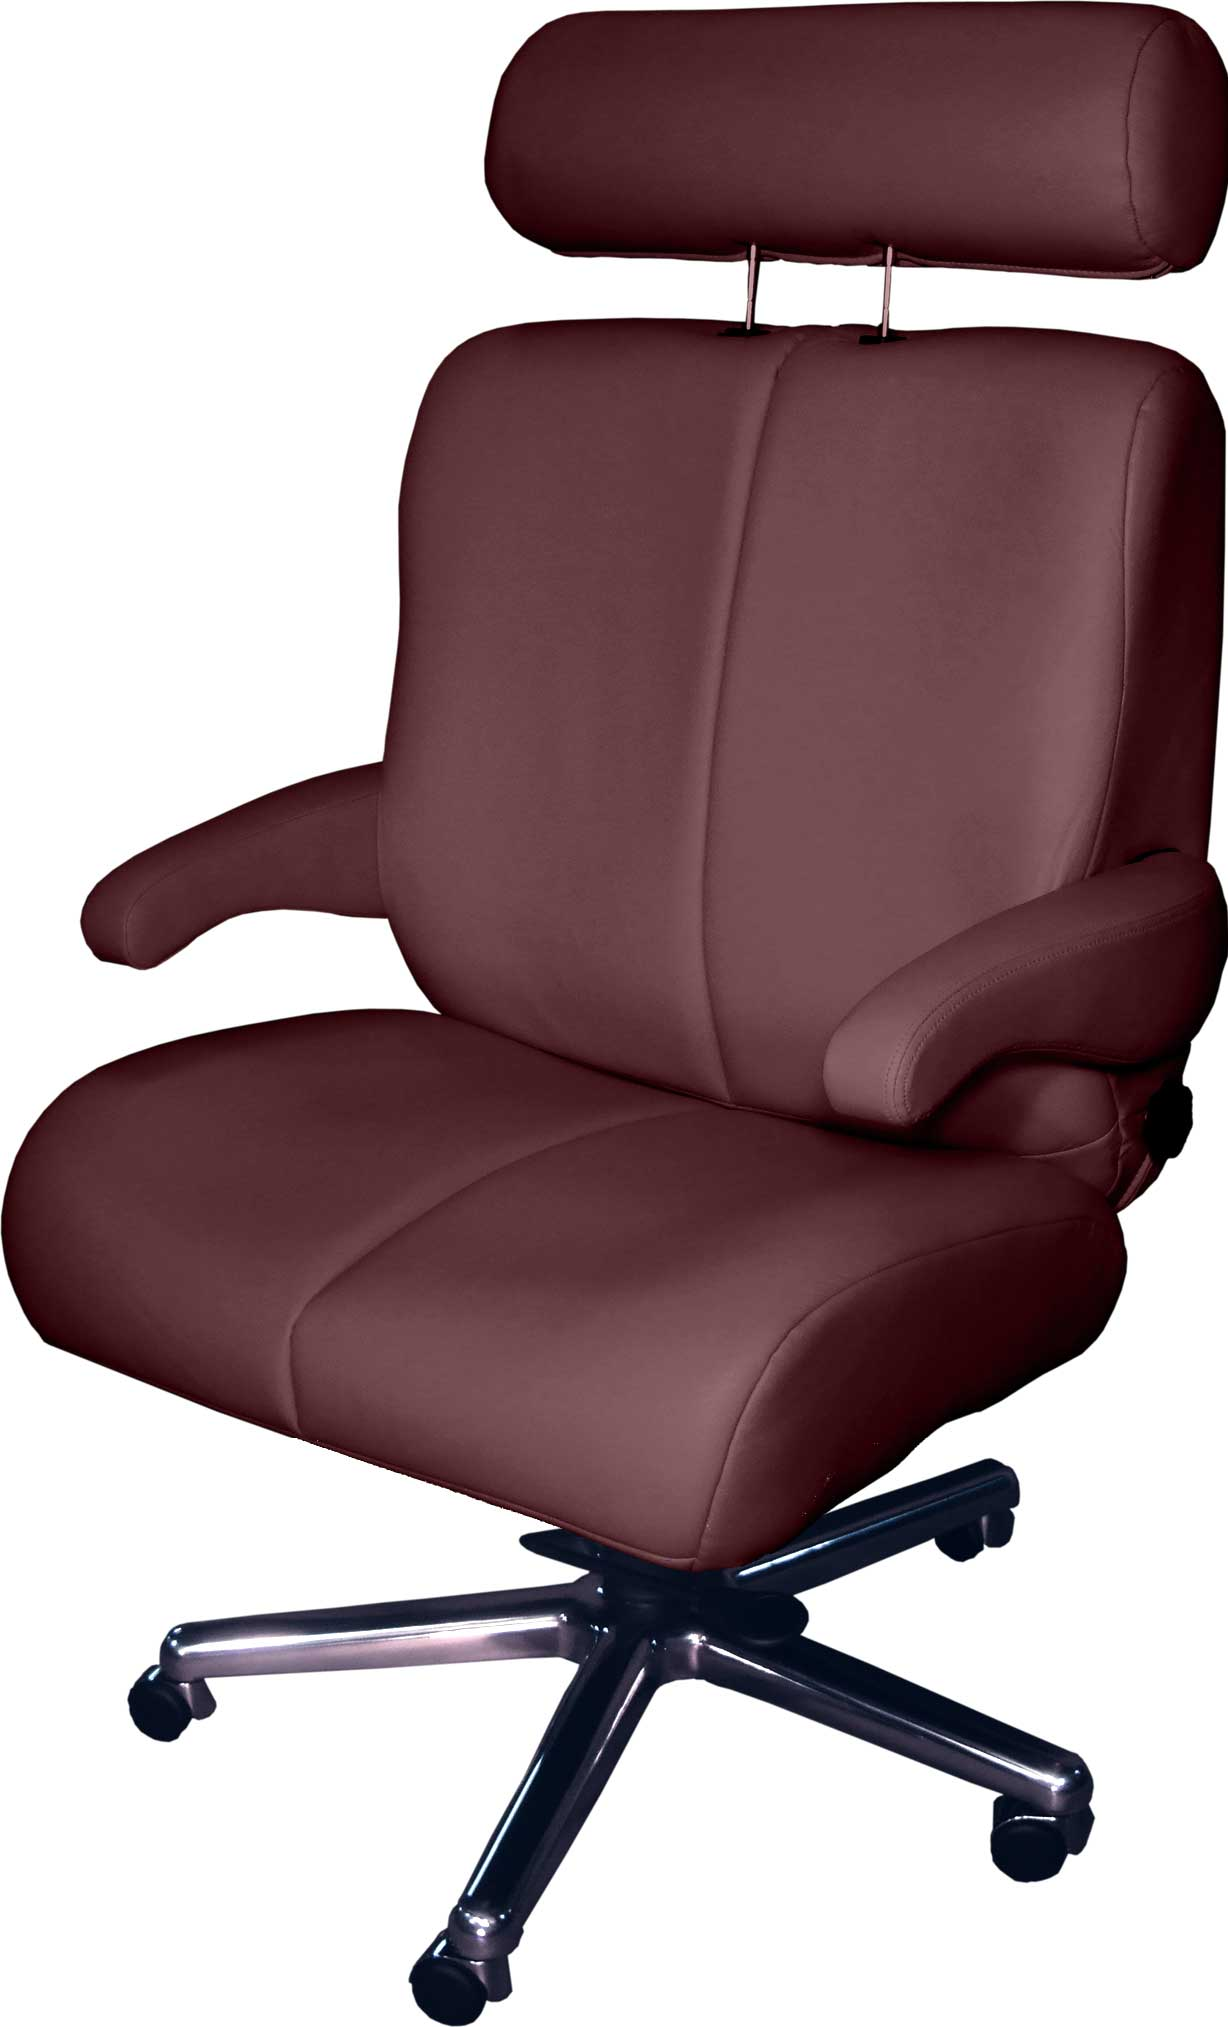 Red Wide First Class Luxury Office Chair